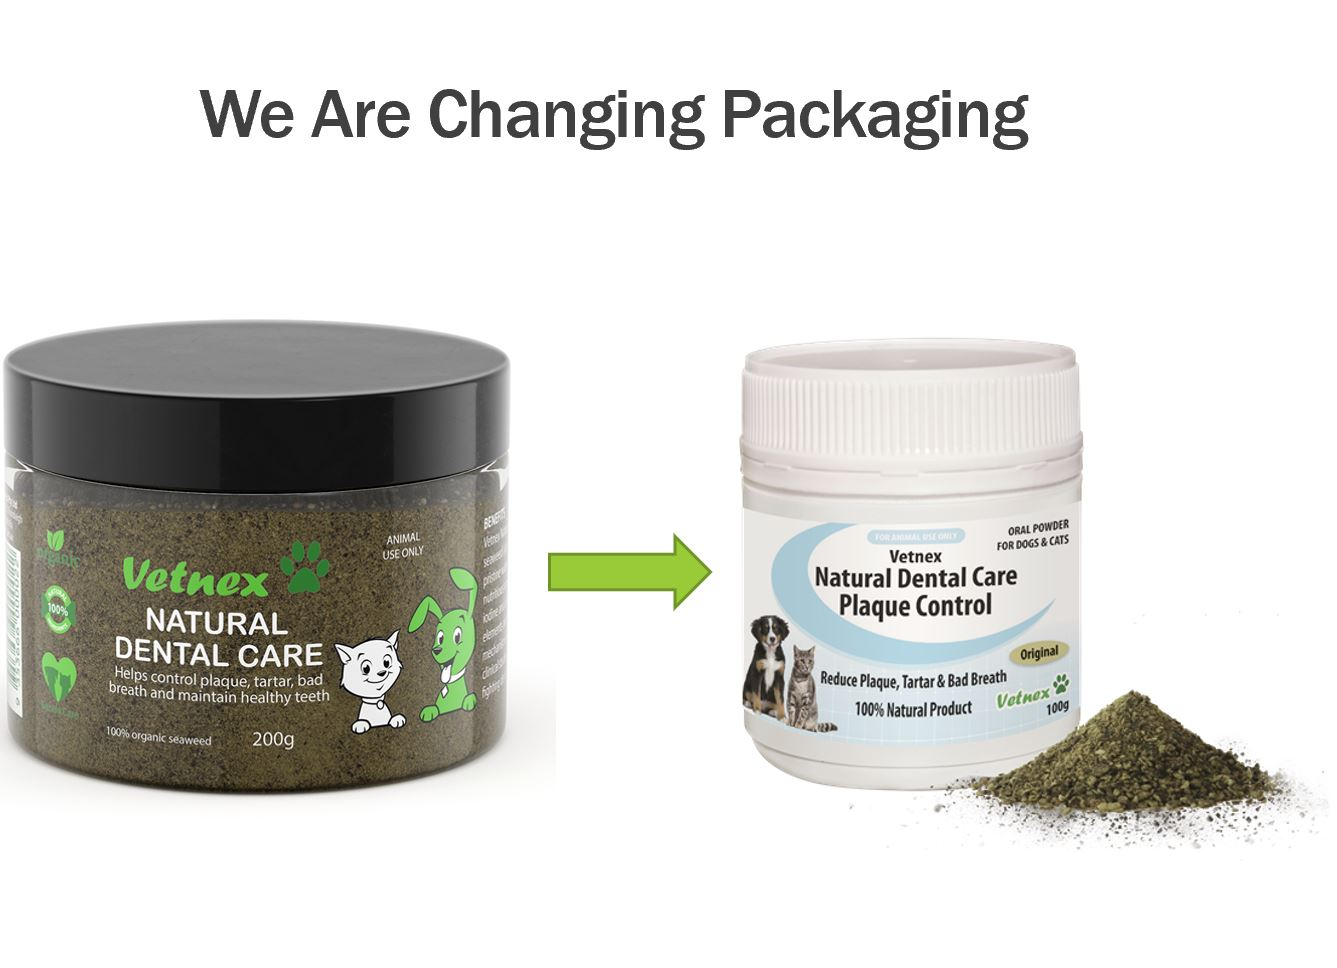 Vetnex Natural Dental Care Plaque Control 200g (Dental Powder) is Changing Packaging